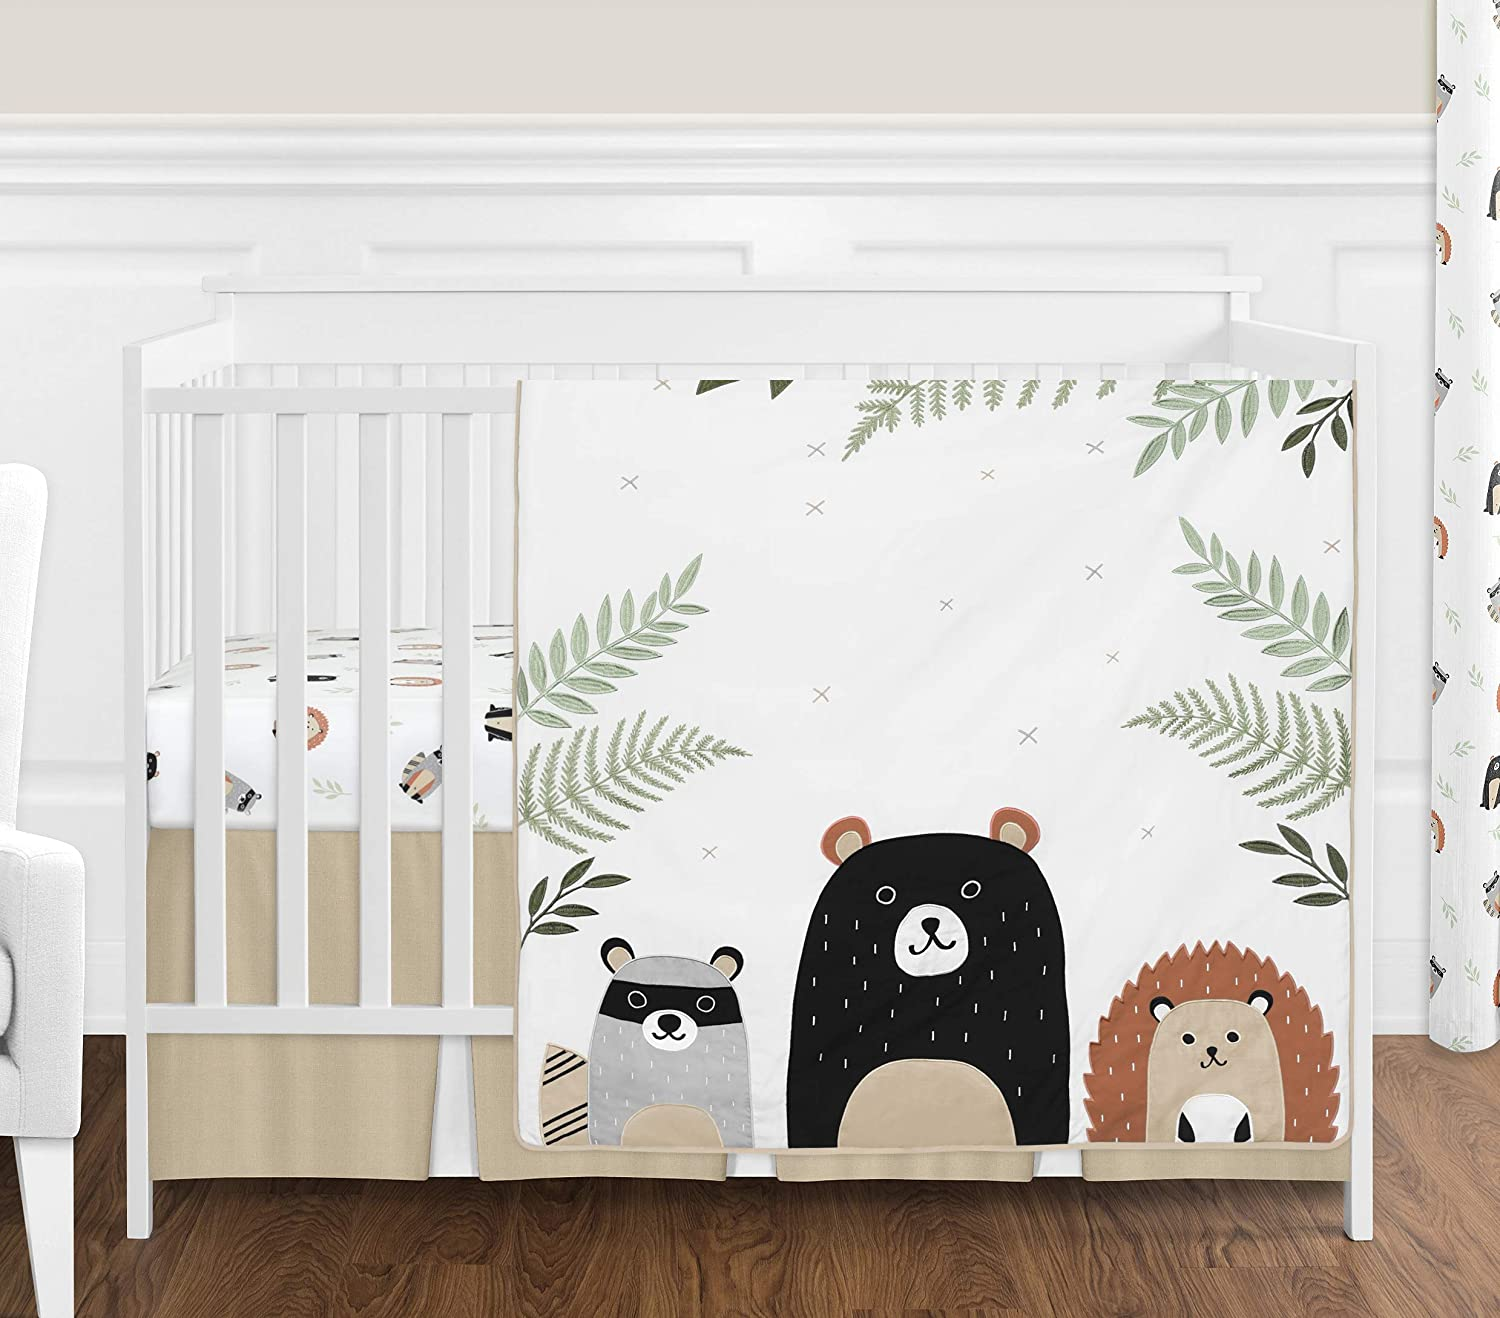 Sweet Jojo Designs Bear Raccoon Hedgehog Forest Animal Woodland Pals Baby Unisex Boy or Girl Nursery Crib Bedding Set Without Bumper - 4 Pieces - Neutral Beige, Green, Black and Grey